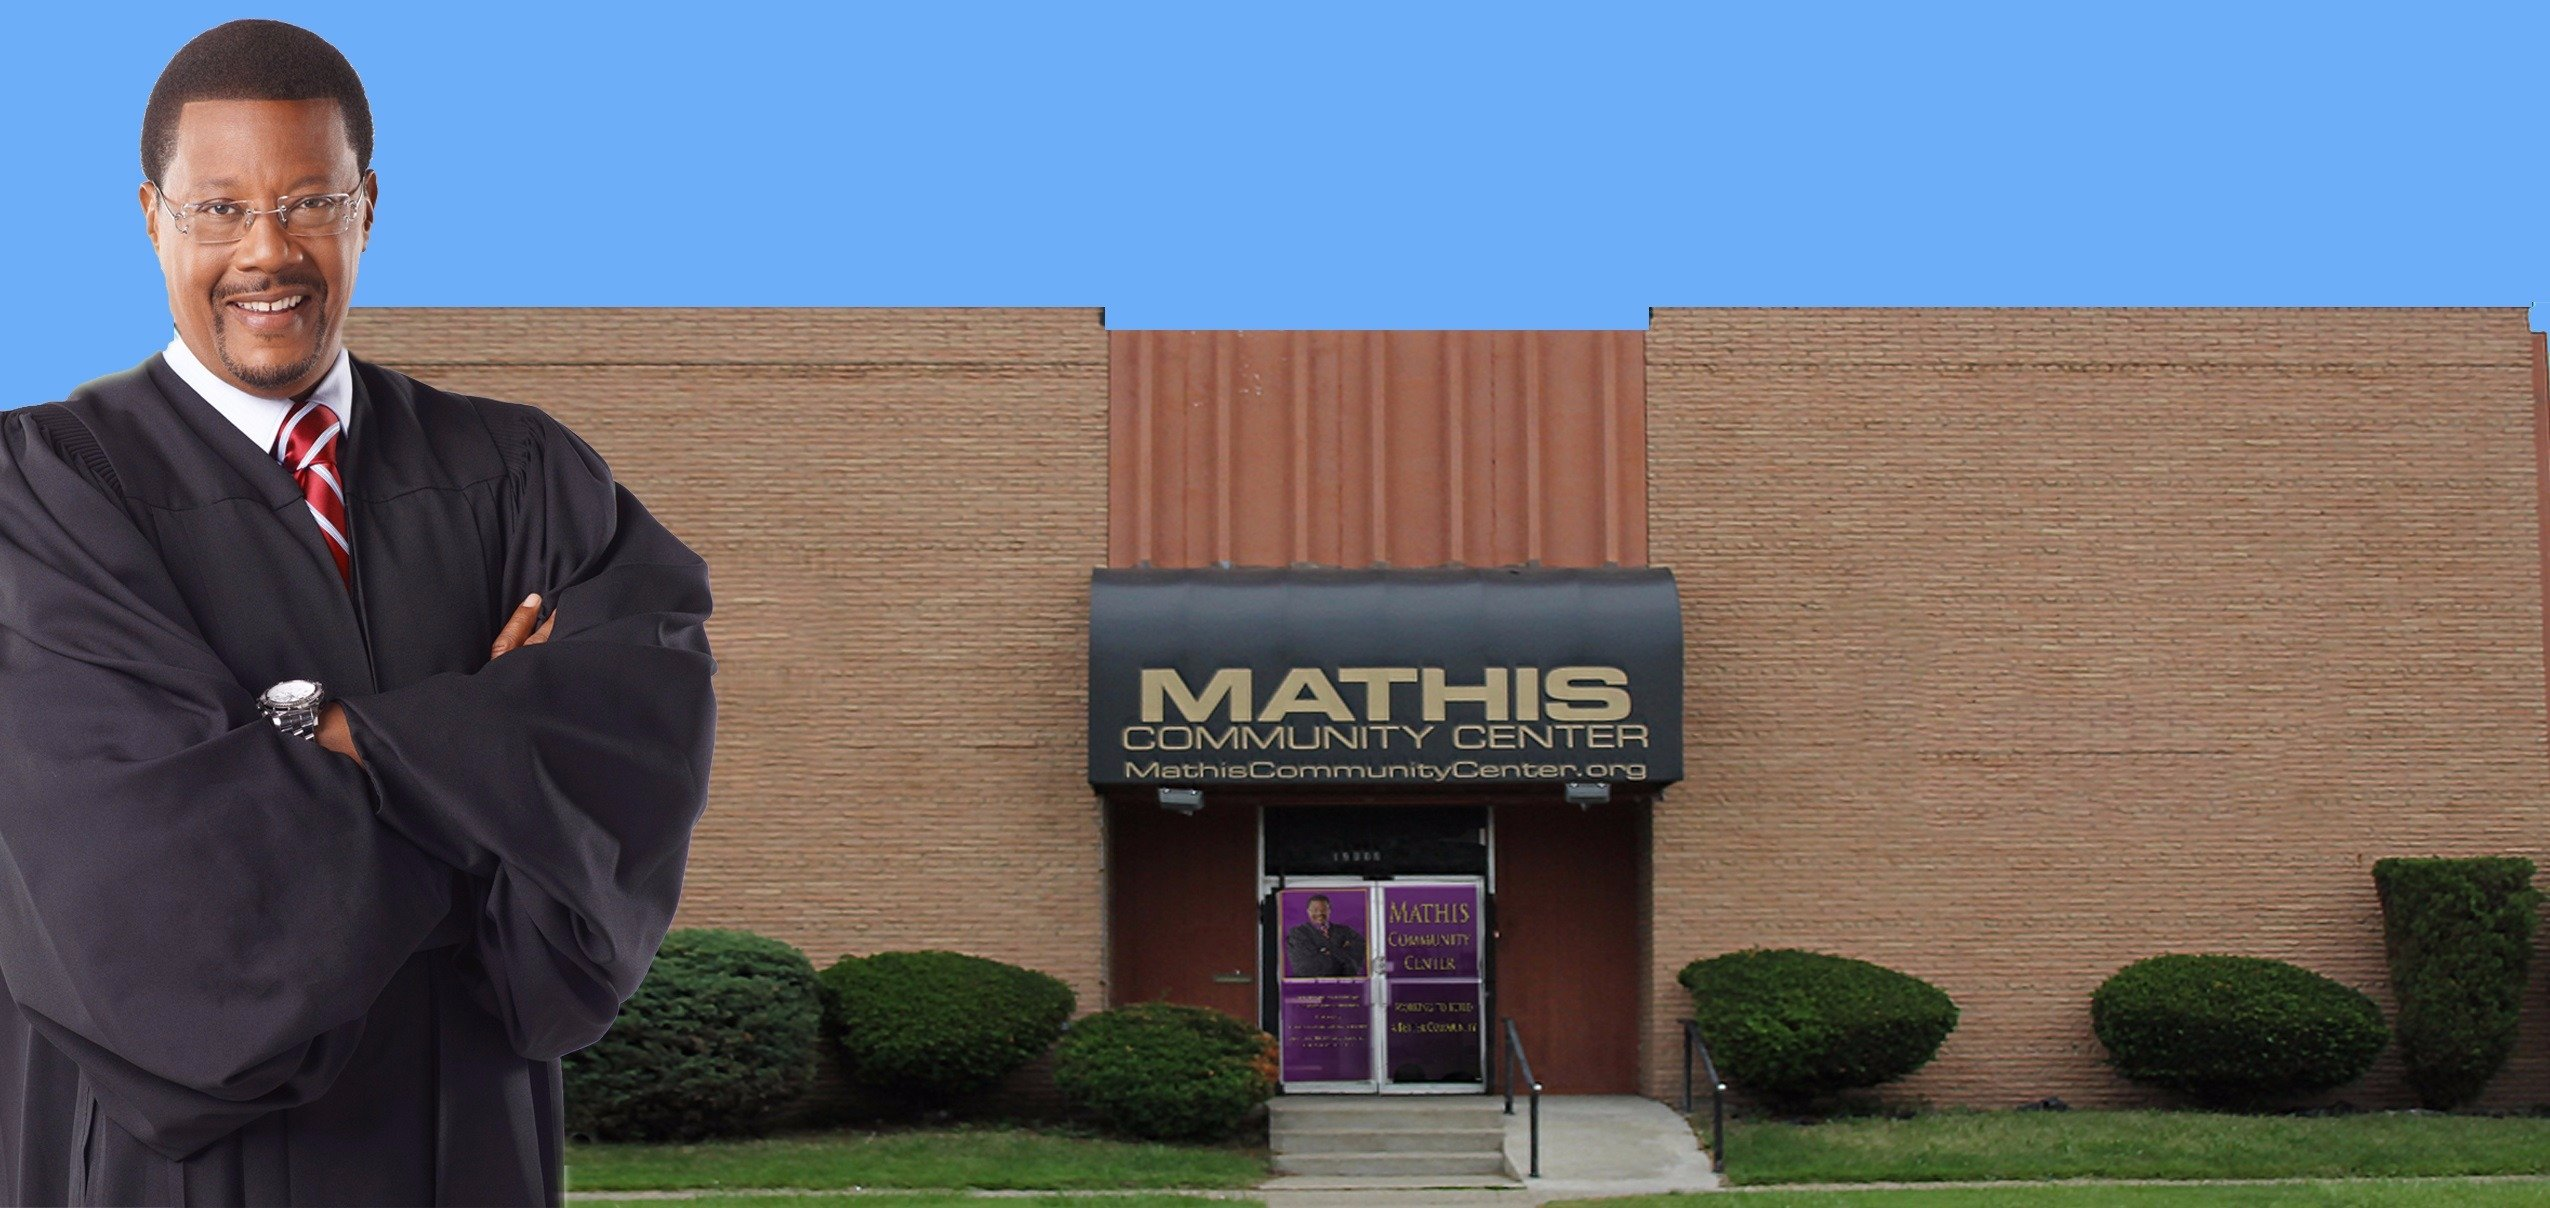 Greg Mathis has founded a community center at his home town of Detroit